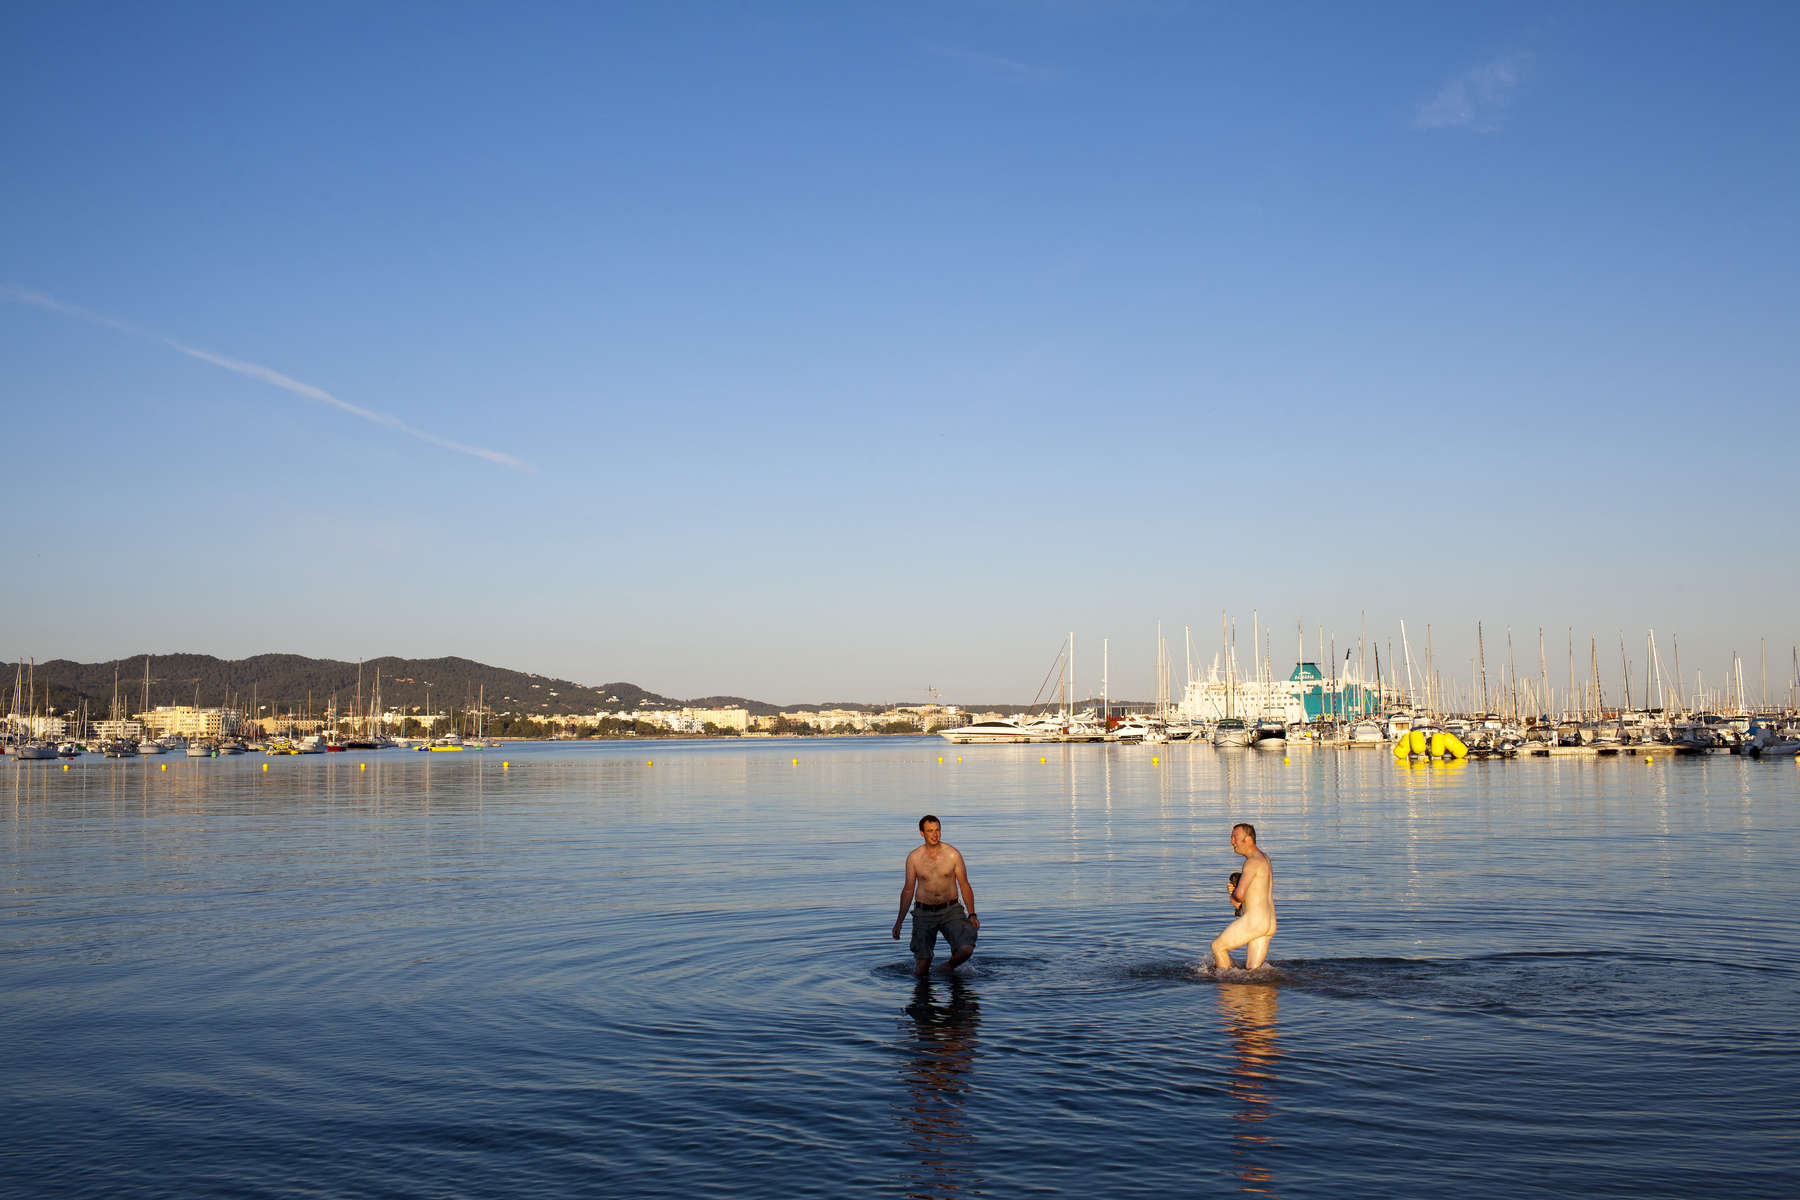 07:16 A naked man holding his clothes in the sea at San Antonio beach, Ibiza. He arrived with friends late the previous evening on a Monarch Airlines flight from Manchester.